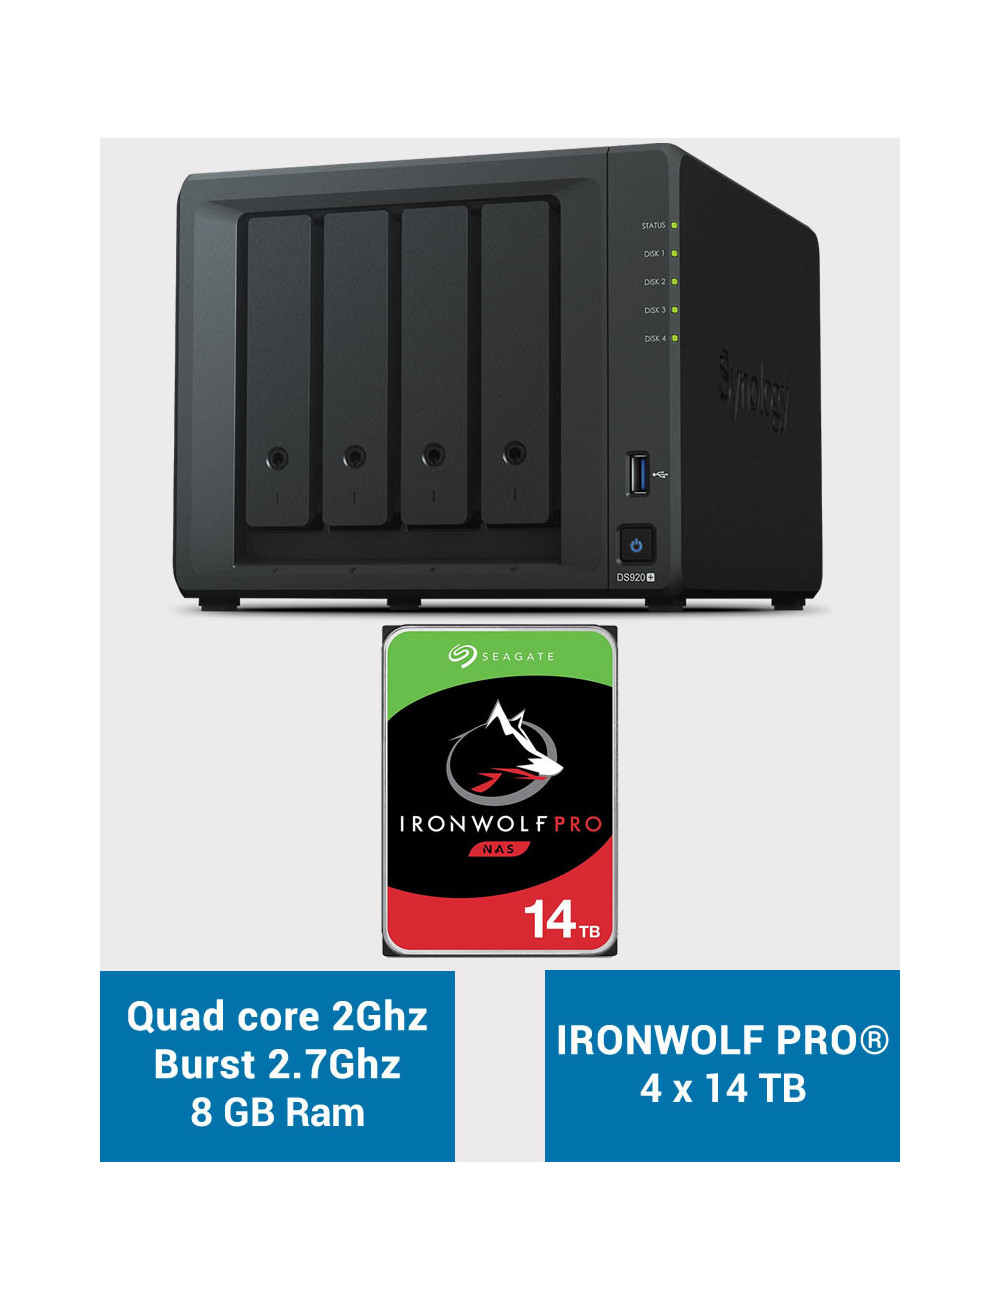 Synology DS920+ 8GB Serveur NAS IRONWOLF PRO 56To (4x14To)